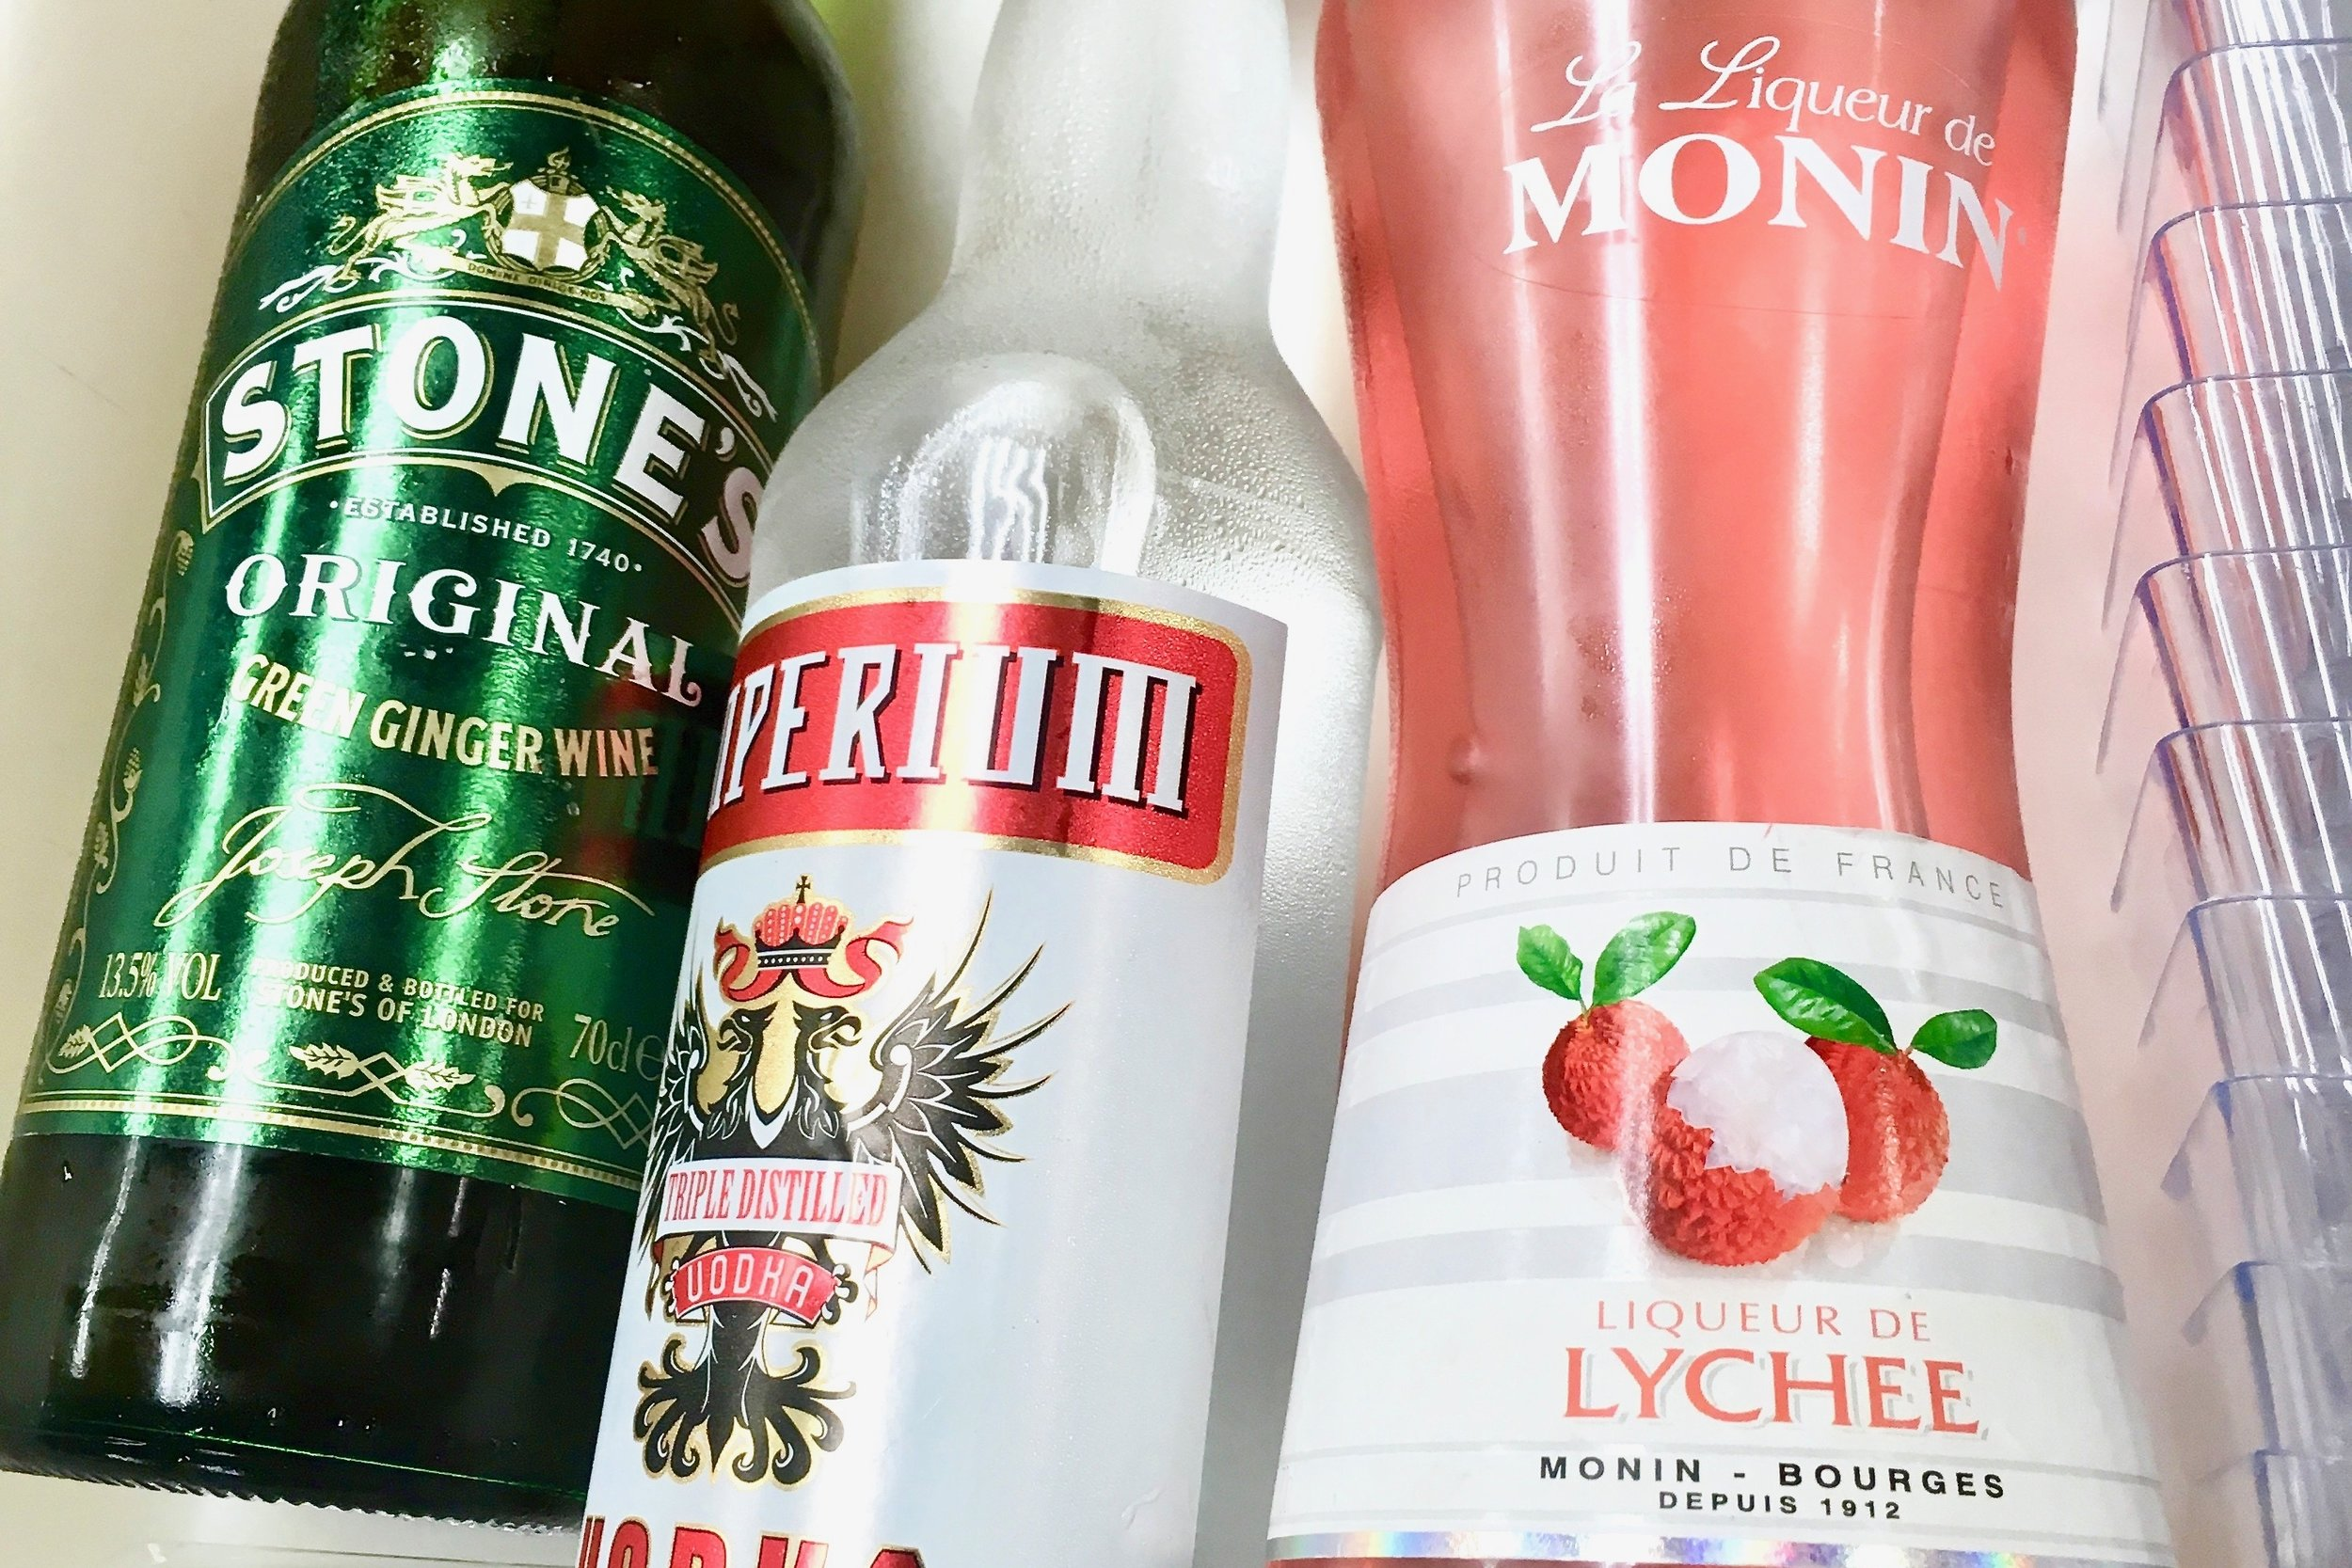 Ginger wine, vodka and lychee liqueur